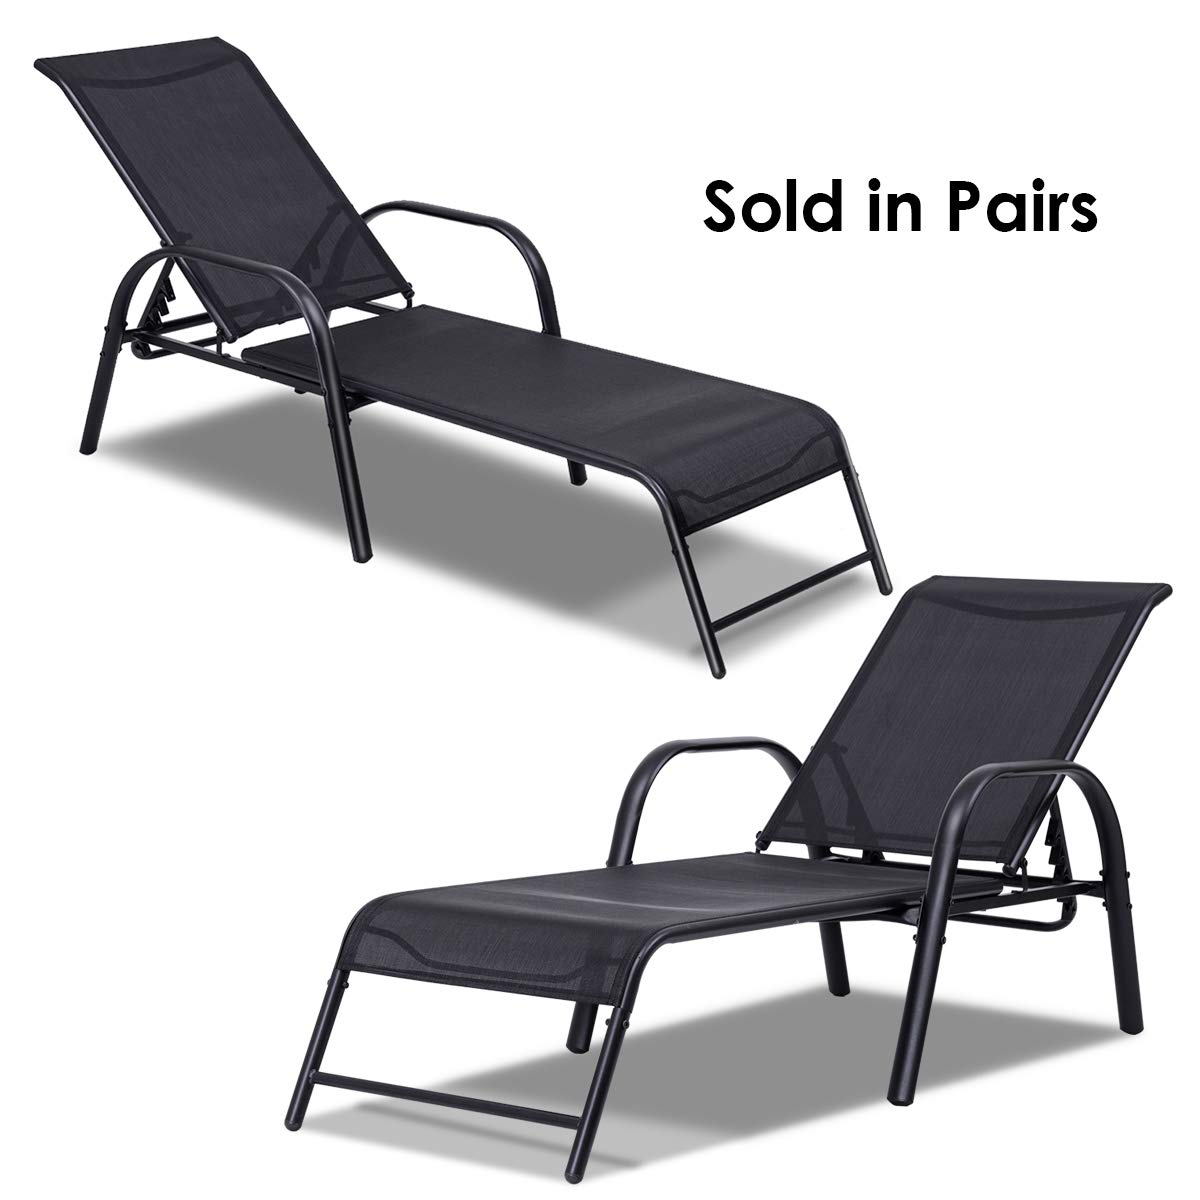 Giantex 2 Pcs Outdoor Patio Chaise, Adjustable Lounge Chairs Patio Furniture, Backyard Lawn Sling Chaise w/Adjustable Back, Beach Yard Pool Folding Recliners by Giantex